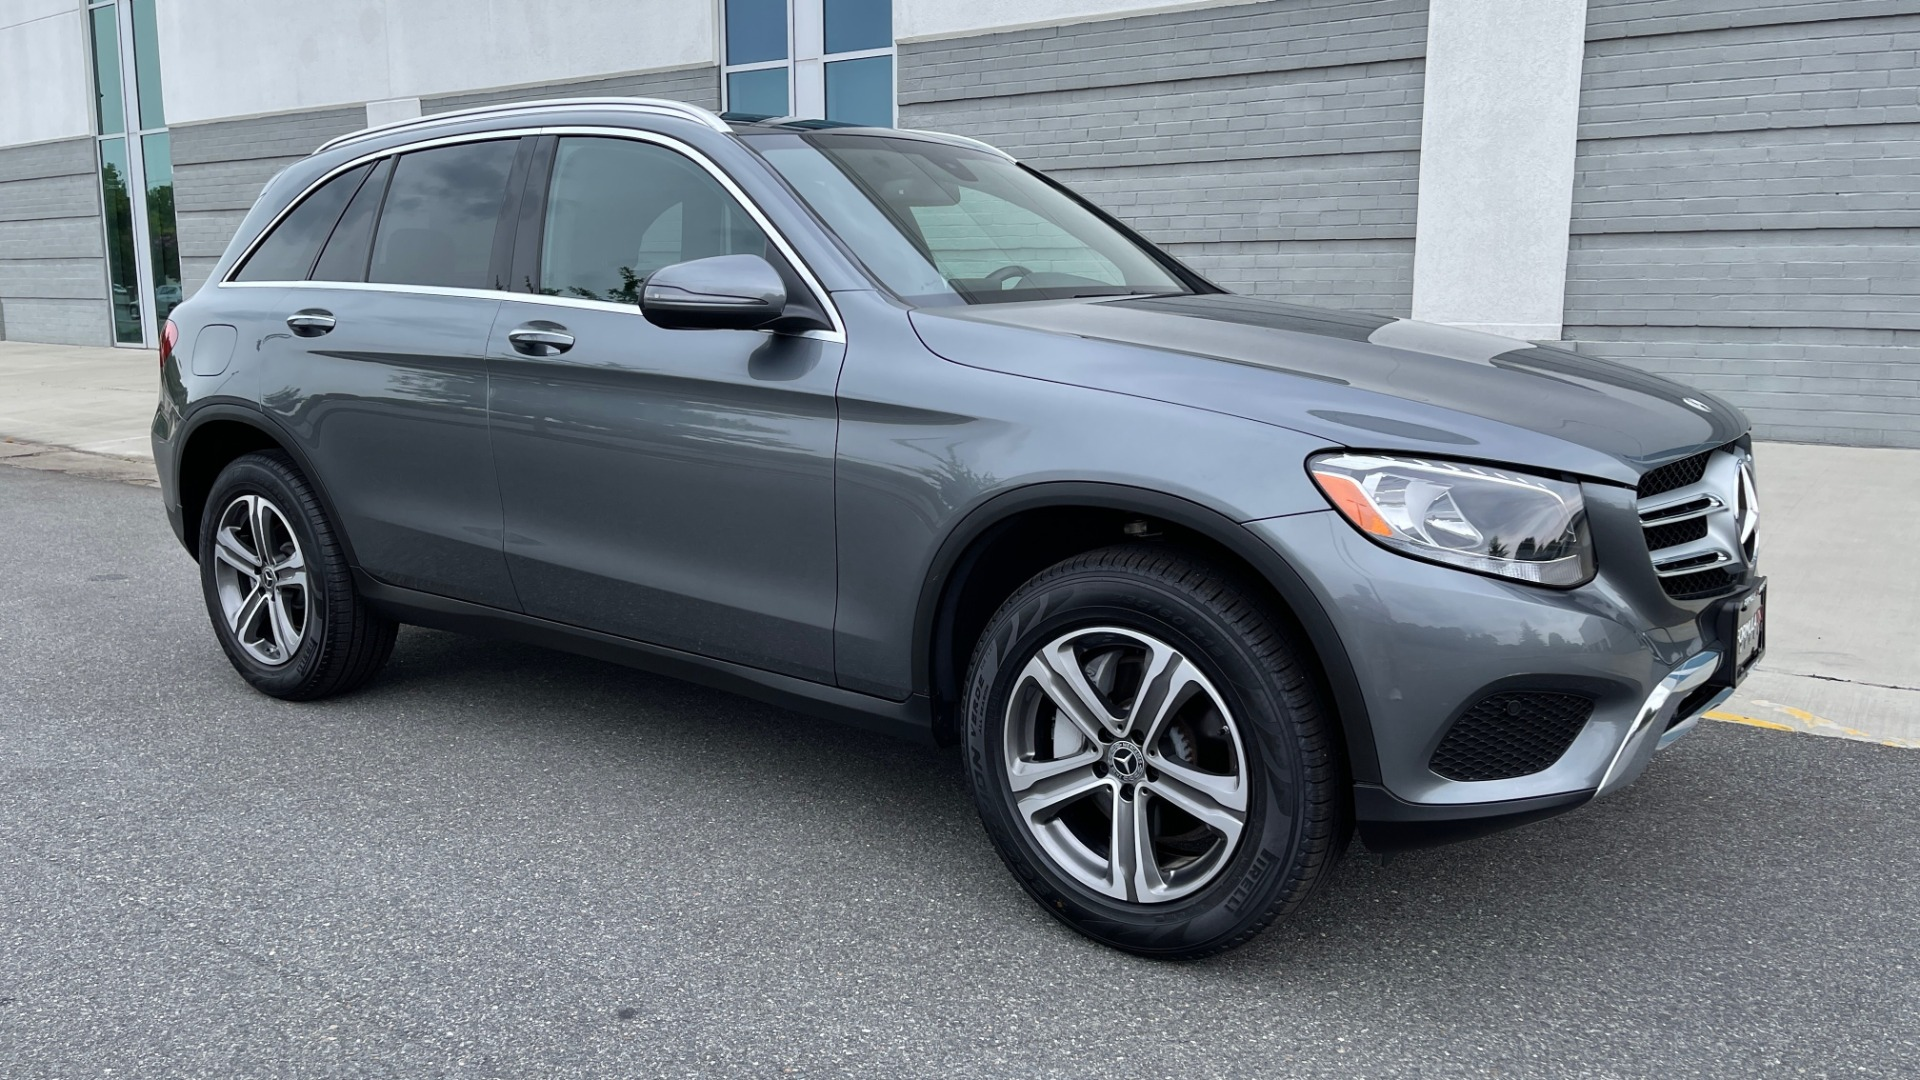 Used 2018 Mercedes-Benz GLC 300 4MATIC PREMIUM / PANO-ROOF / HTD STS / APPLE / REARVIEW for sale $34,295 at Formula Imports in Charlotte NC 28227 6